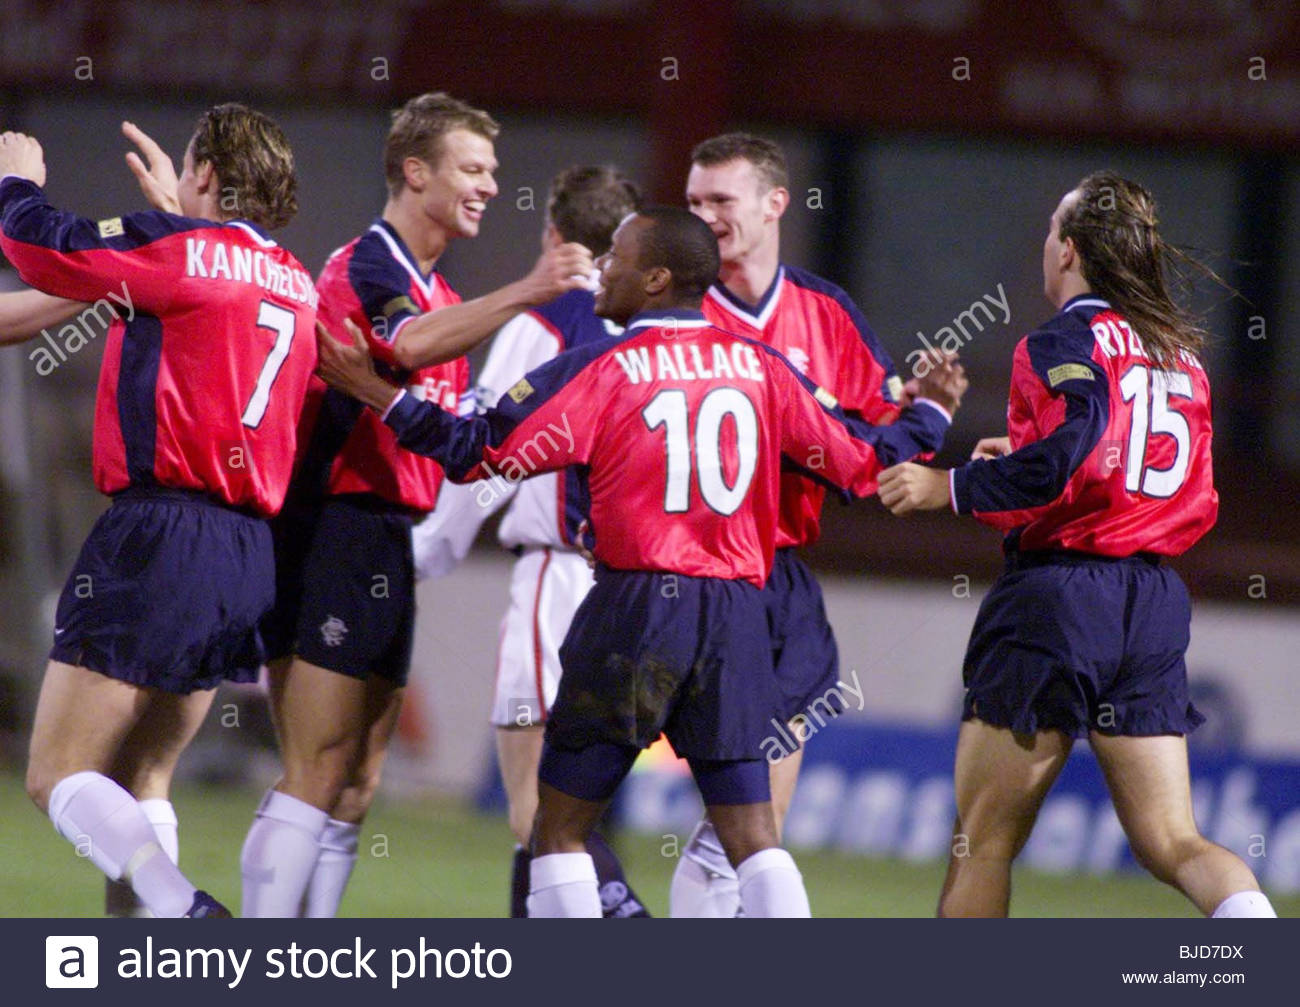 27/02/00 SPL DUNDEE V RANGERS (1-7) DENS PARK - DUNDEE The Rangers players celebrate as Dundee are put to the sword - Stock Image